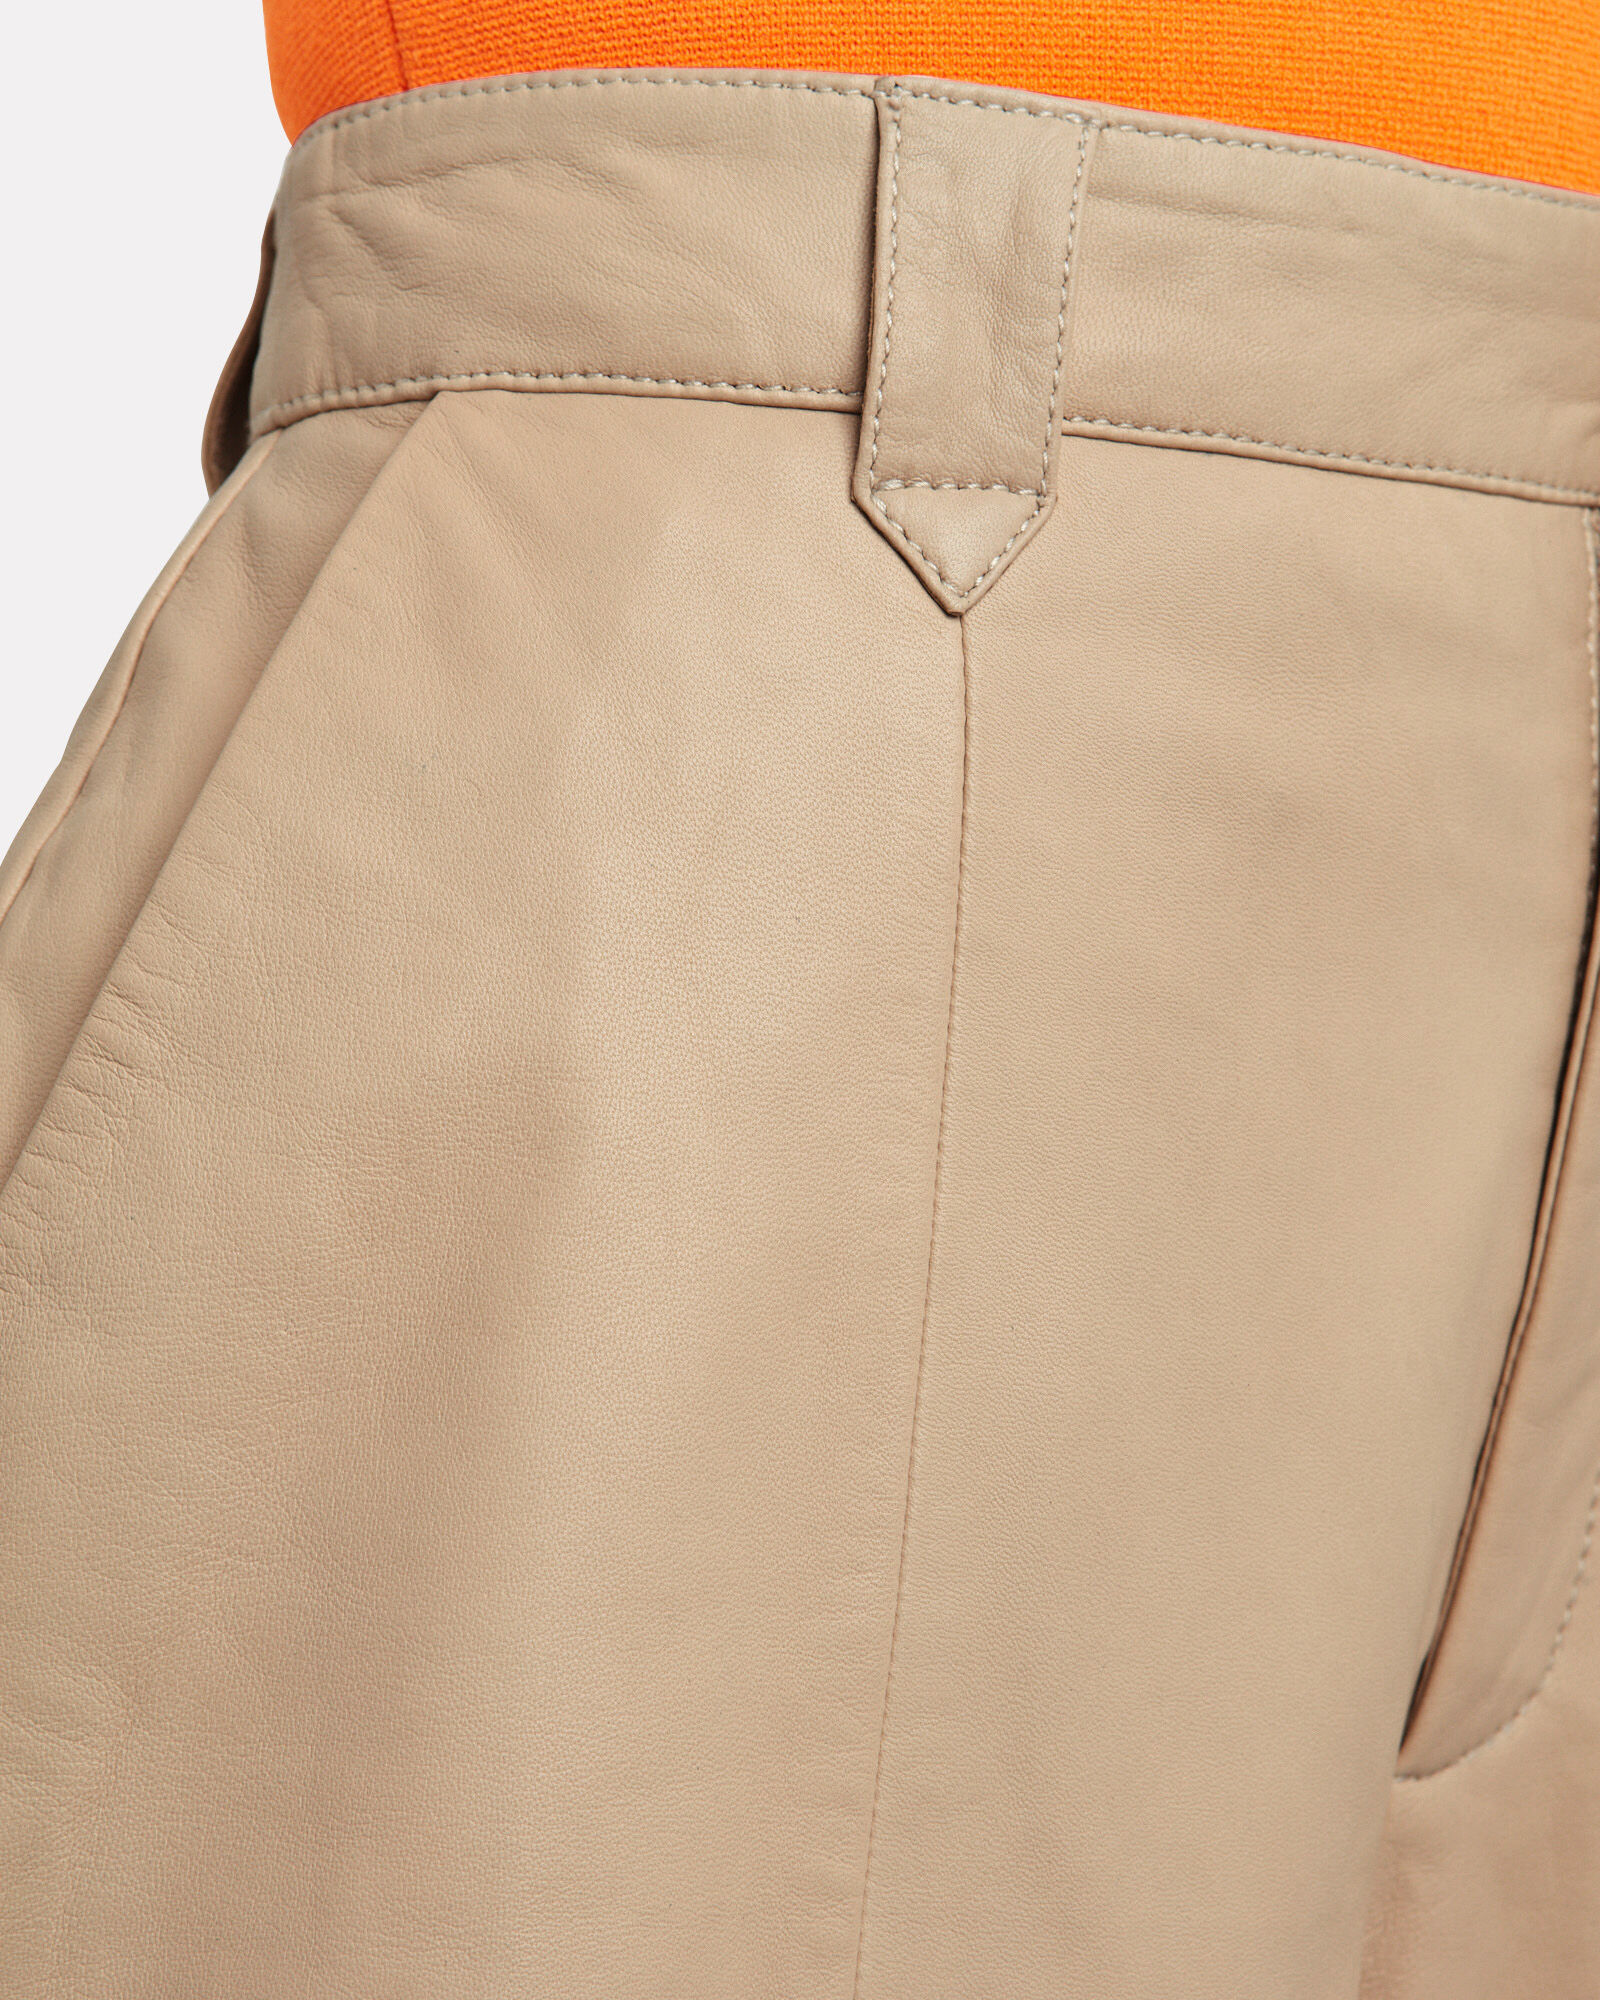 Suri High-Rise Leather Shorts, BEIGE, hi-res